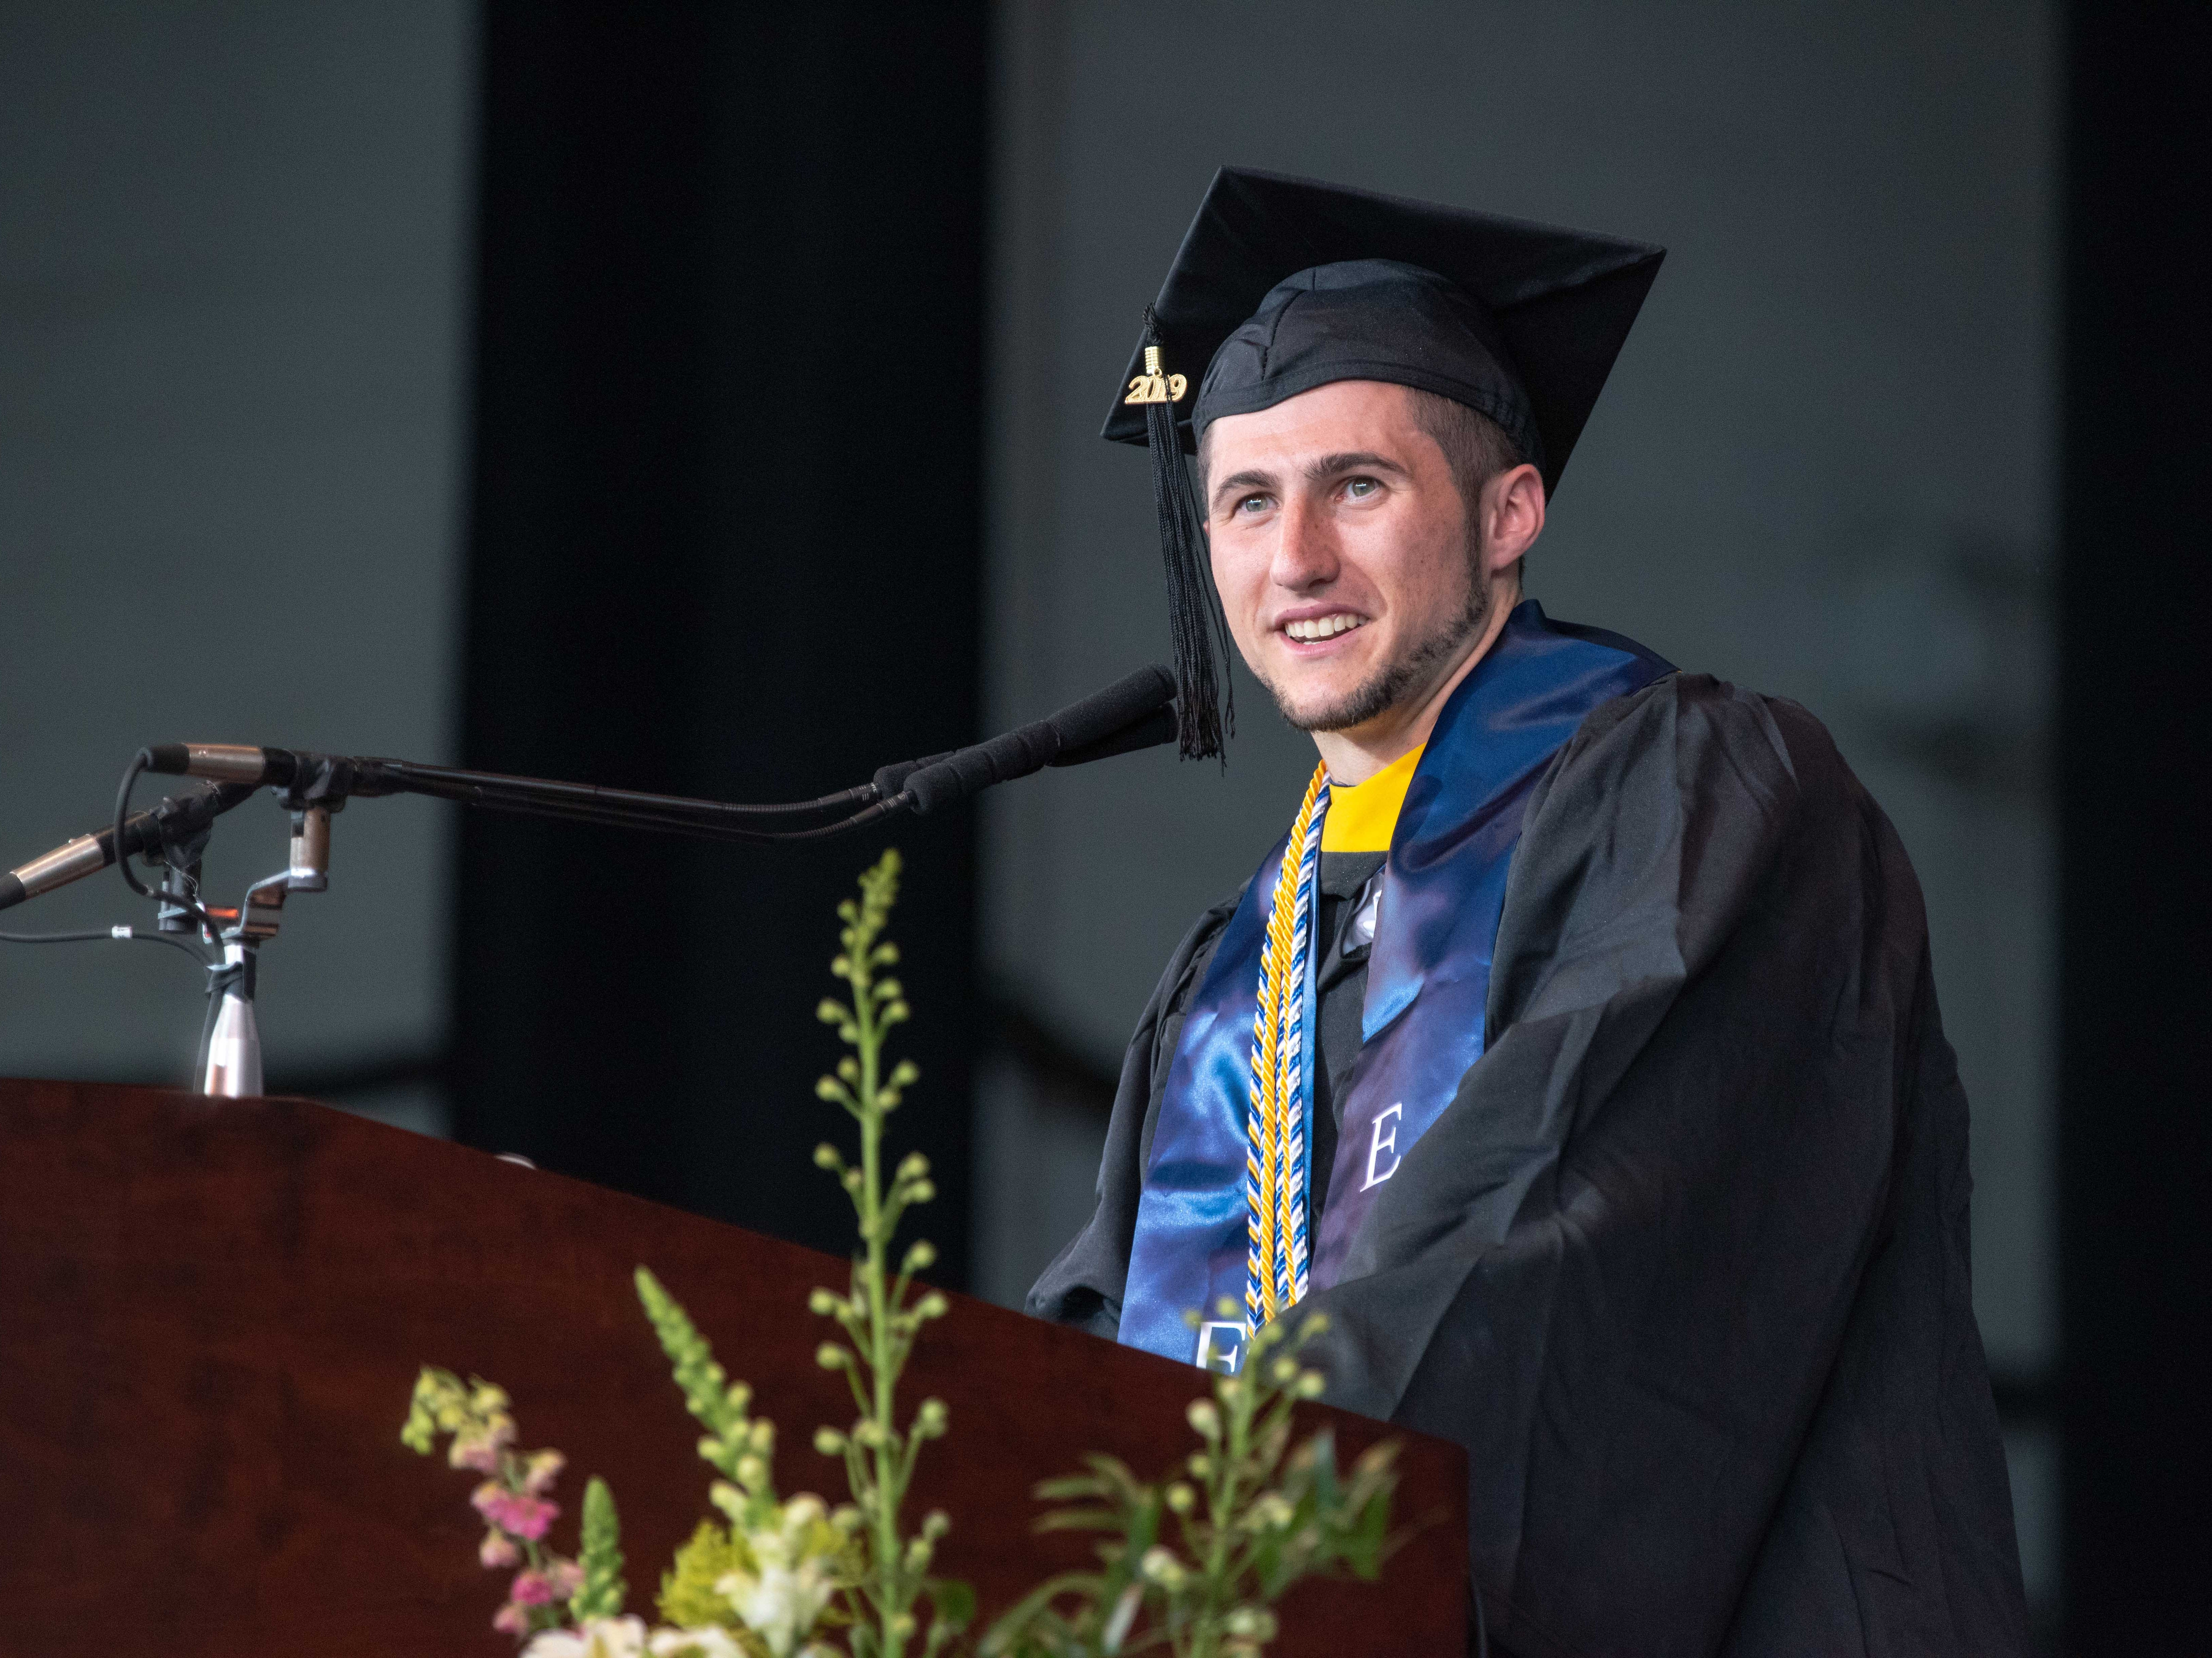 Nicholas A. Plodwick, class president, at the Monmouth University undergraduate commencement for the class of 2019 at PNC Bank Arts Center, Holmdel, on May 15, 2019.